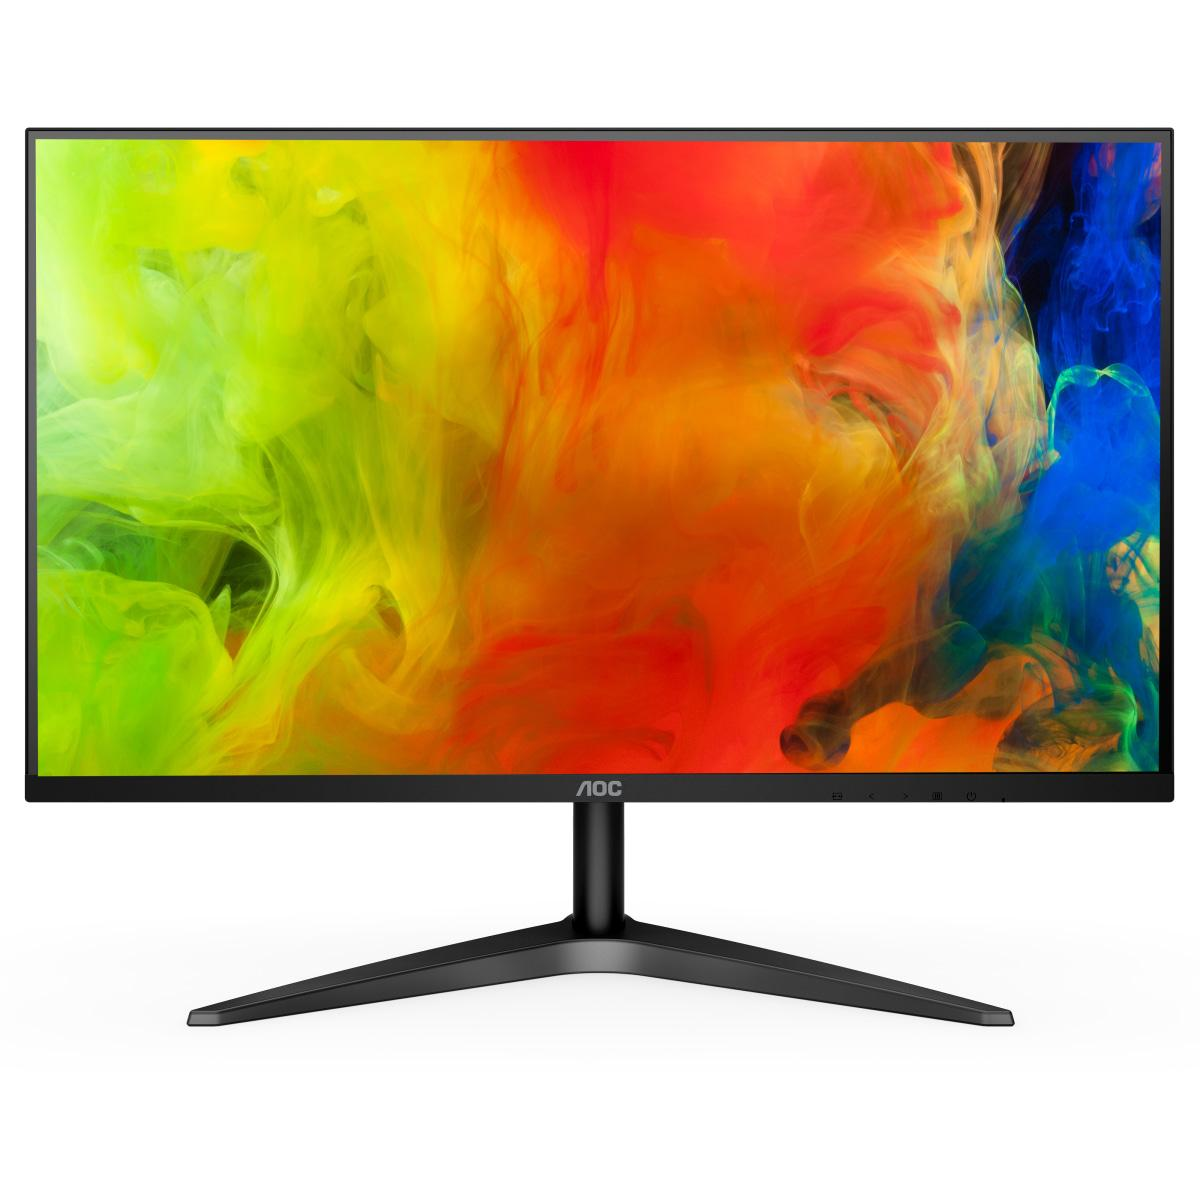 Monitor 23,6 LED Full HD (Preto) - AOC